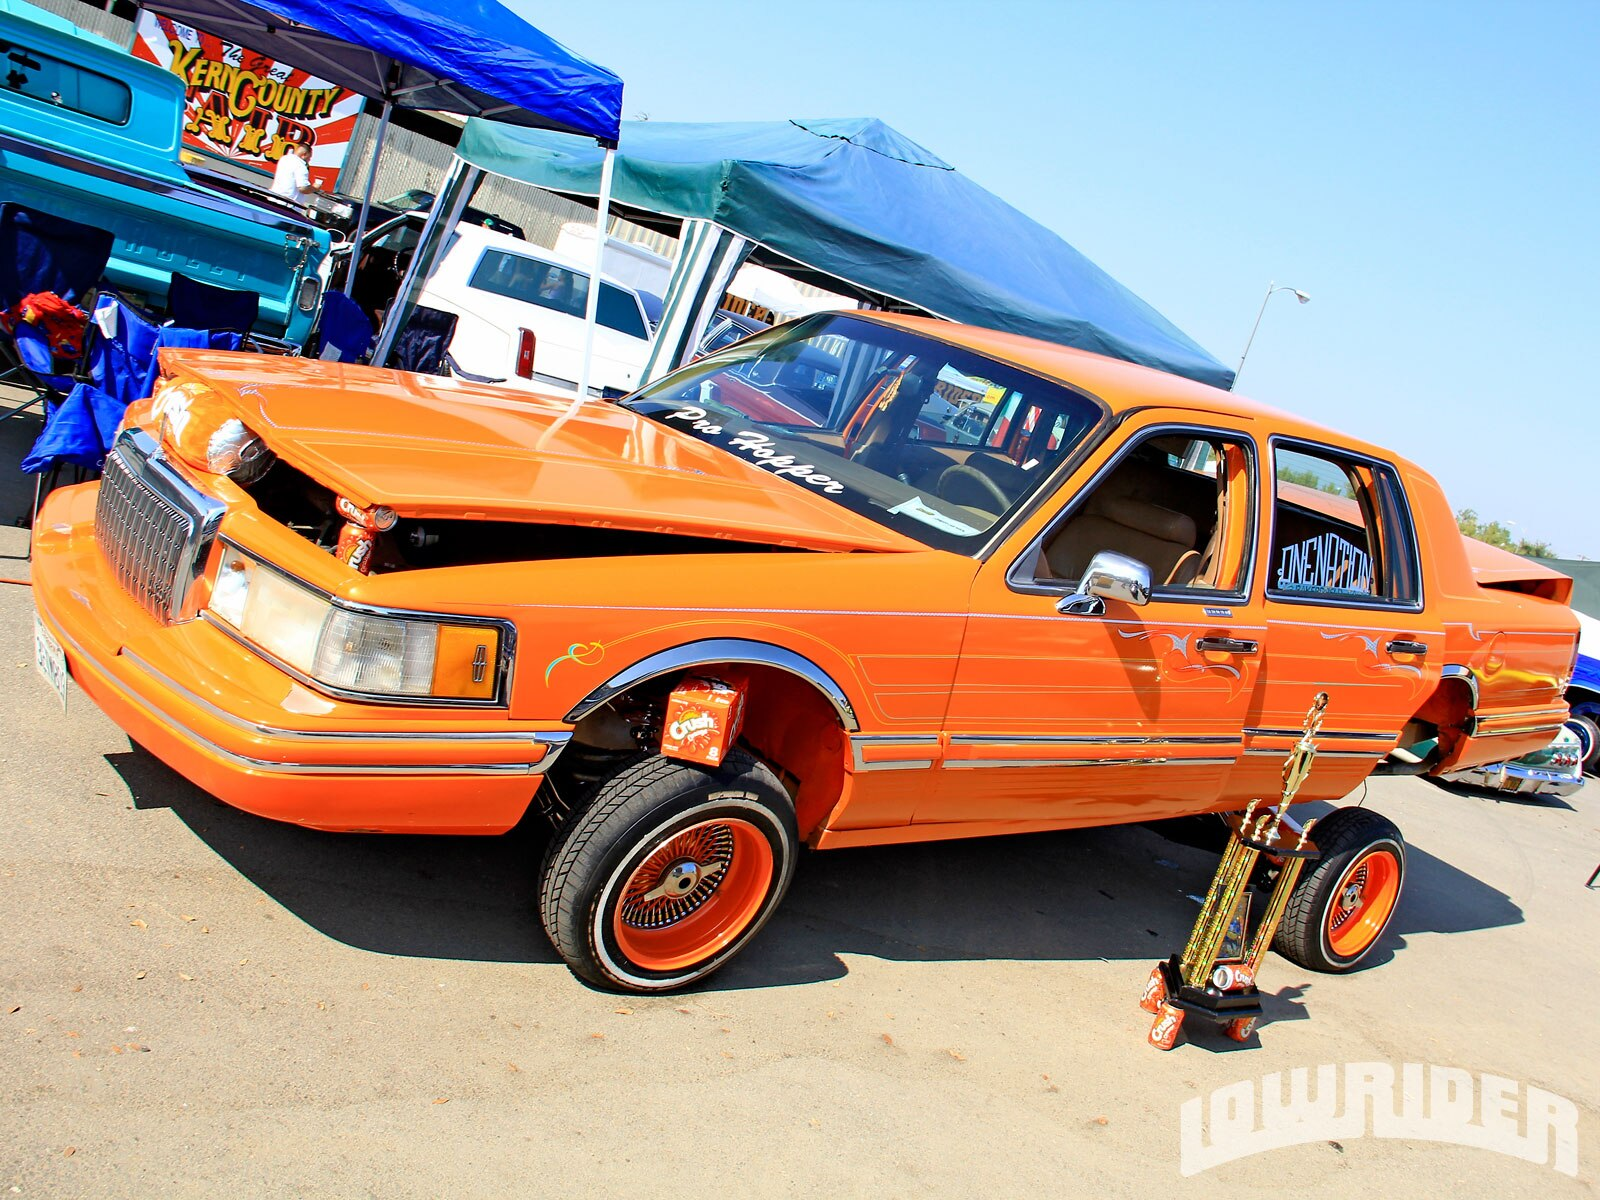 Carnales Unidos Annual Benefit Car Show - Lowrider Magazine